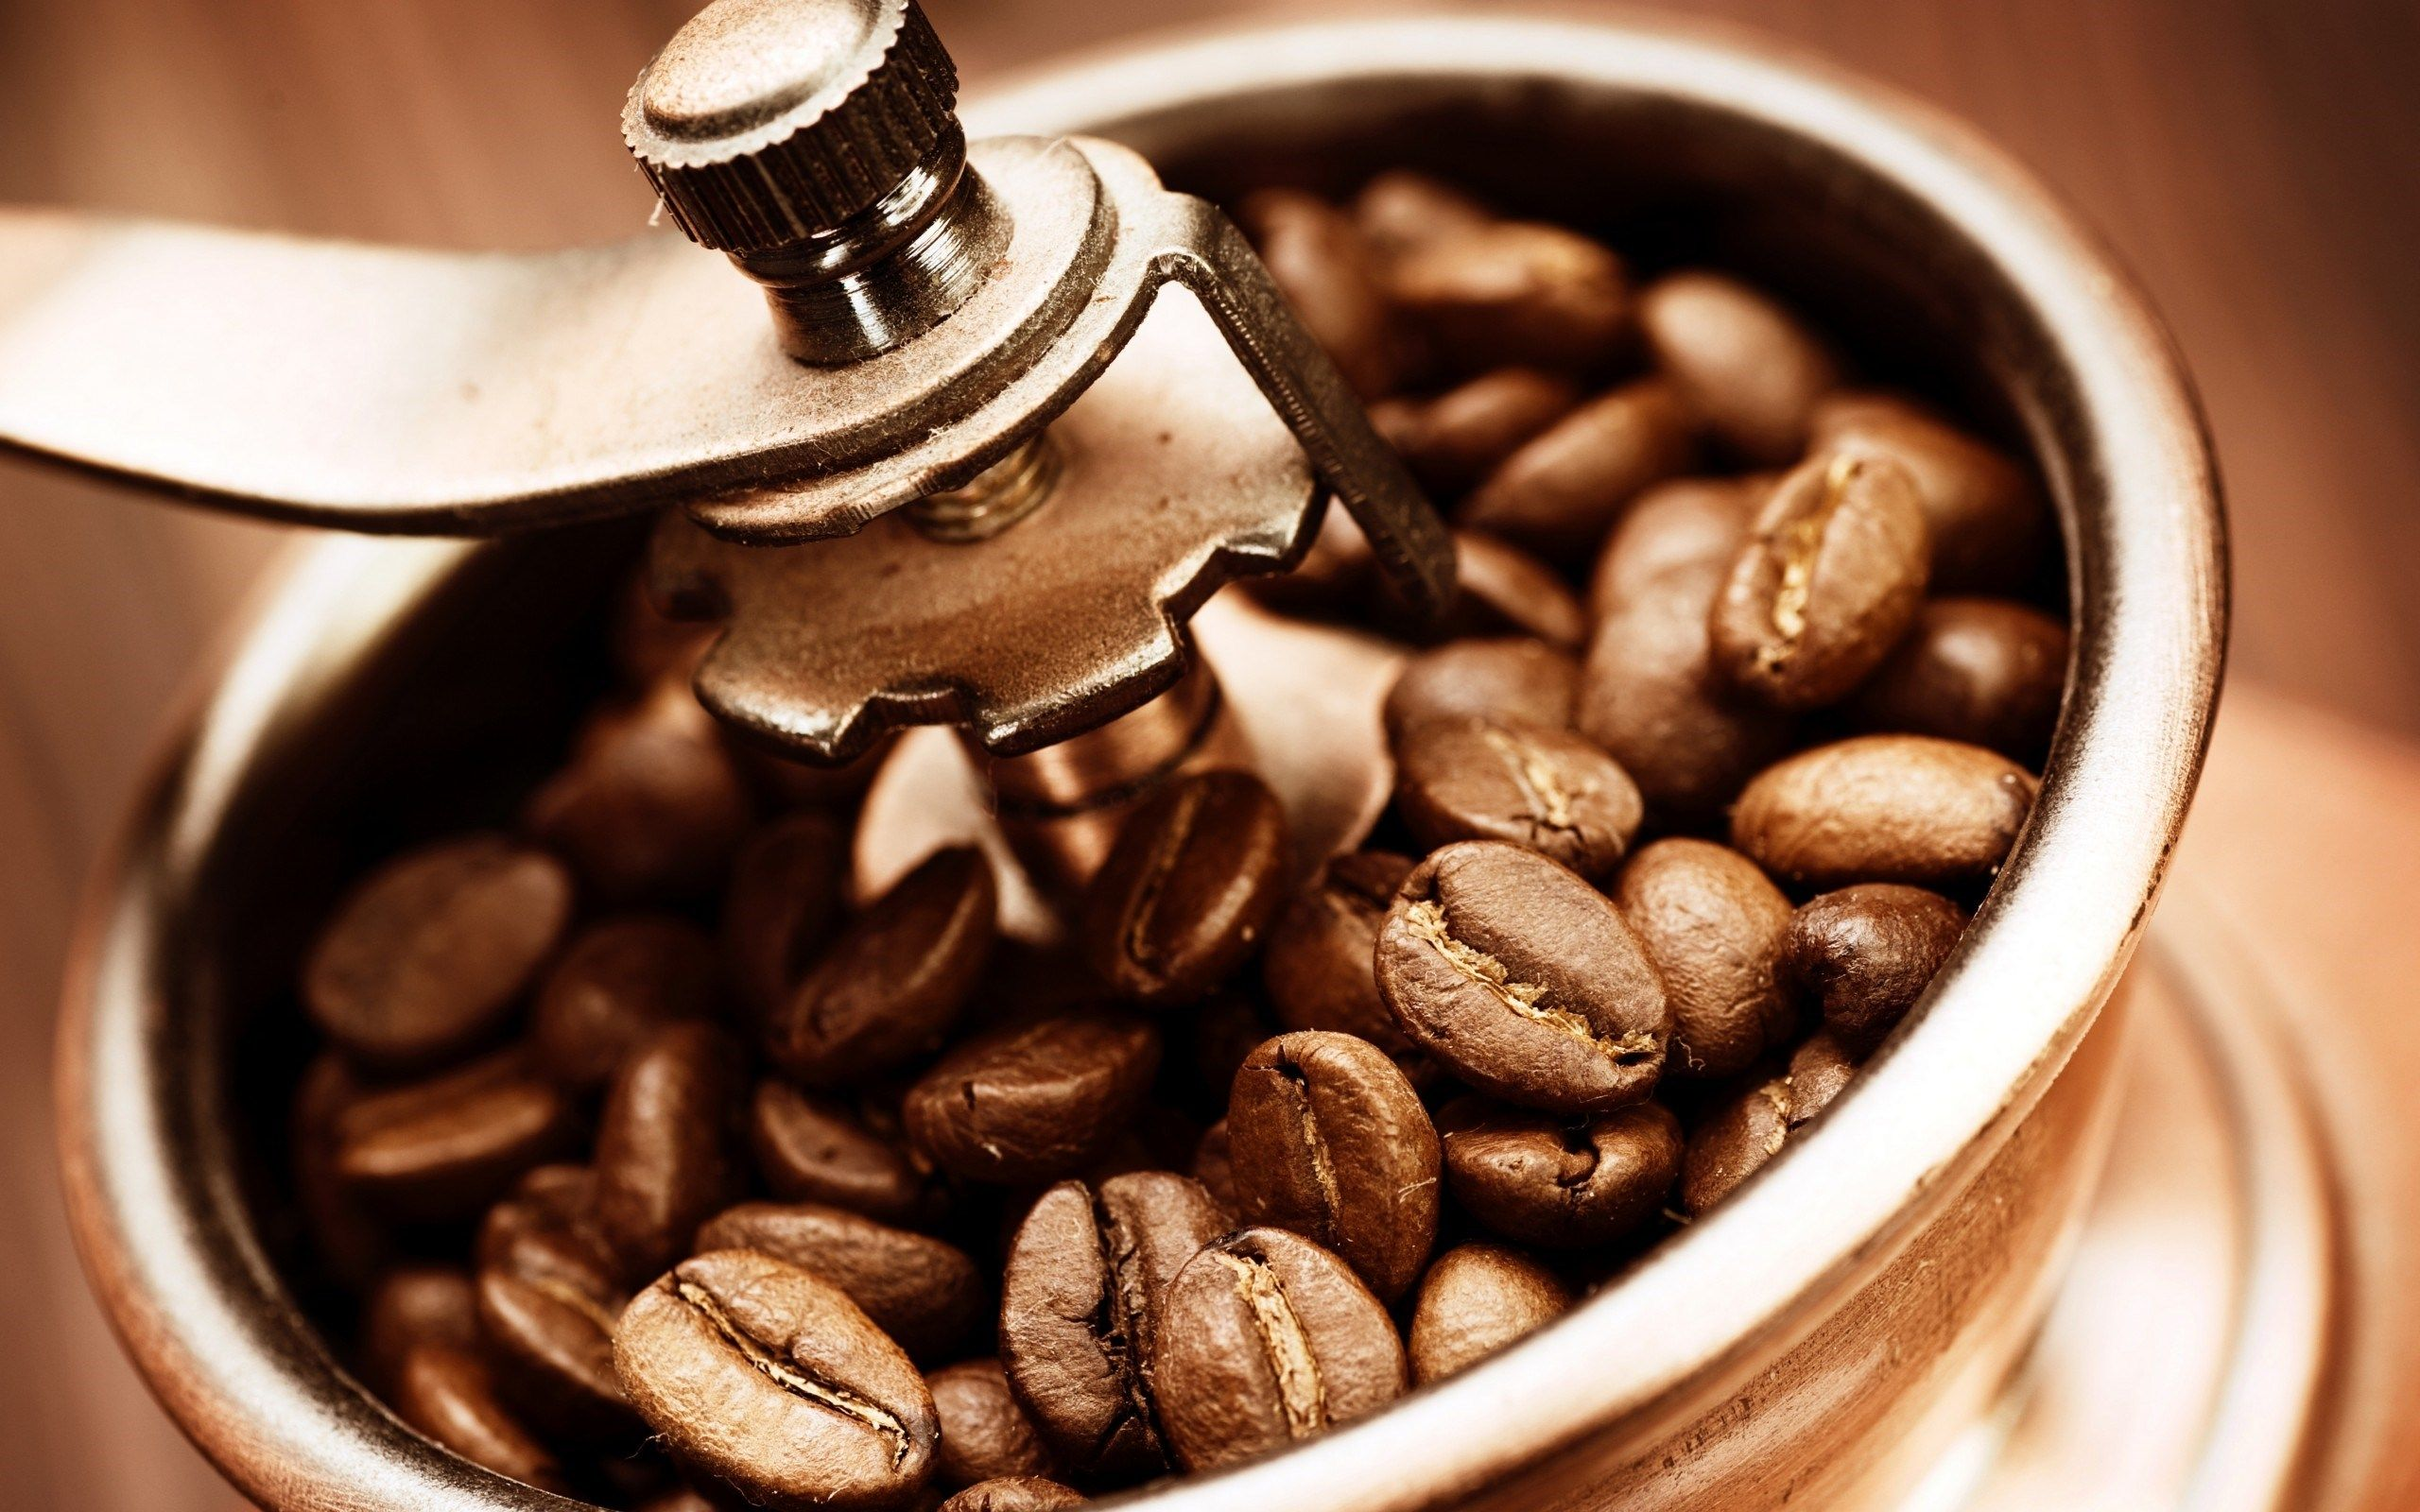 Tough Choice Should I Buy A Manual Or Automatic Coffee Grinder Brownscoffee Com Gourmet Coffee Coffee Grinder Coffee Wallpaper Hd wallpaper coffee grinder coffee beans